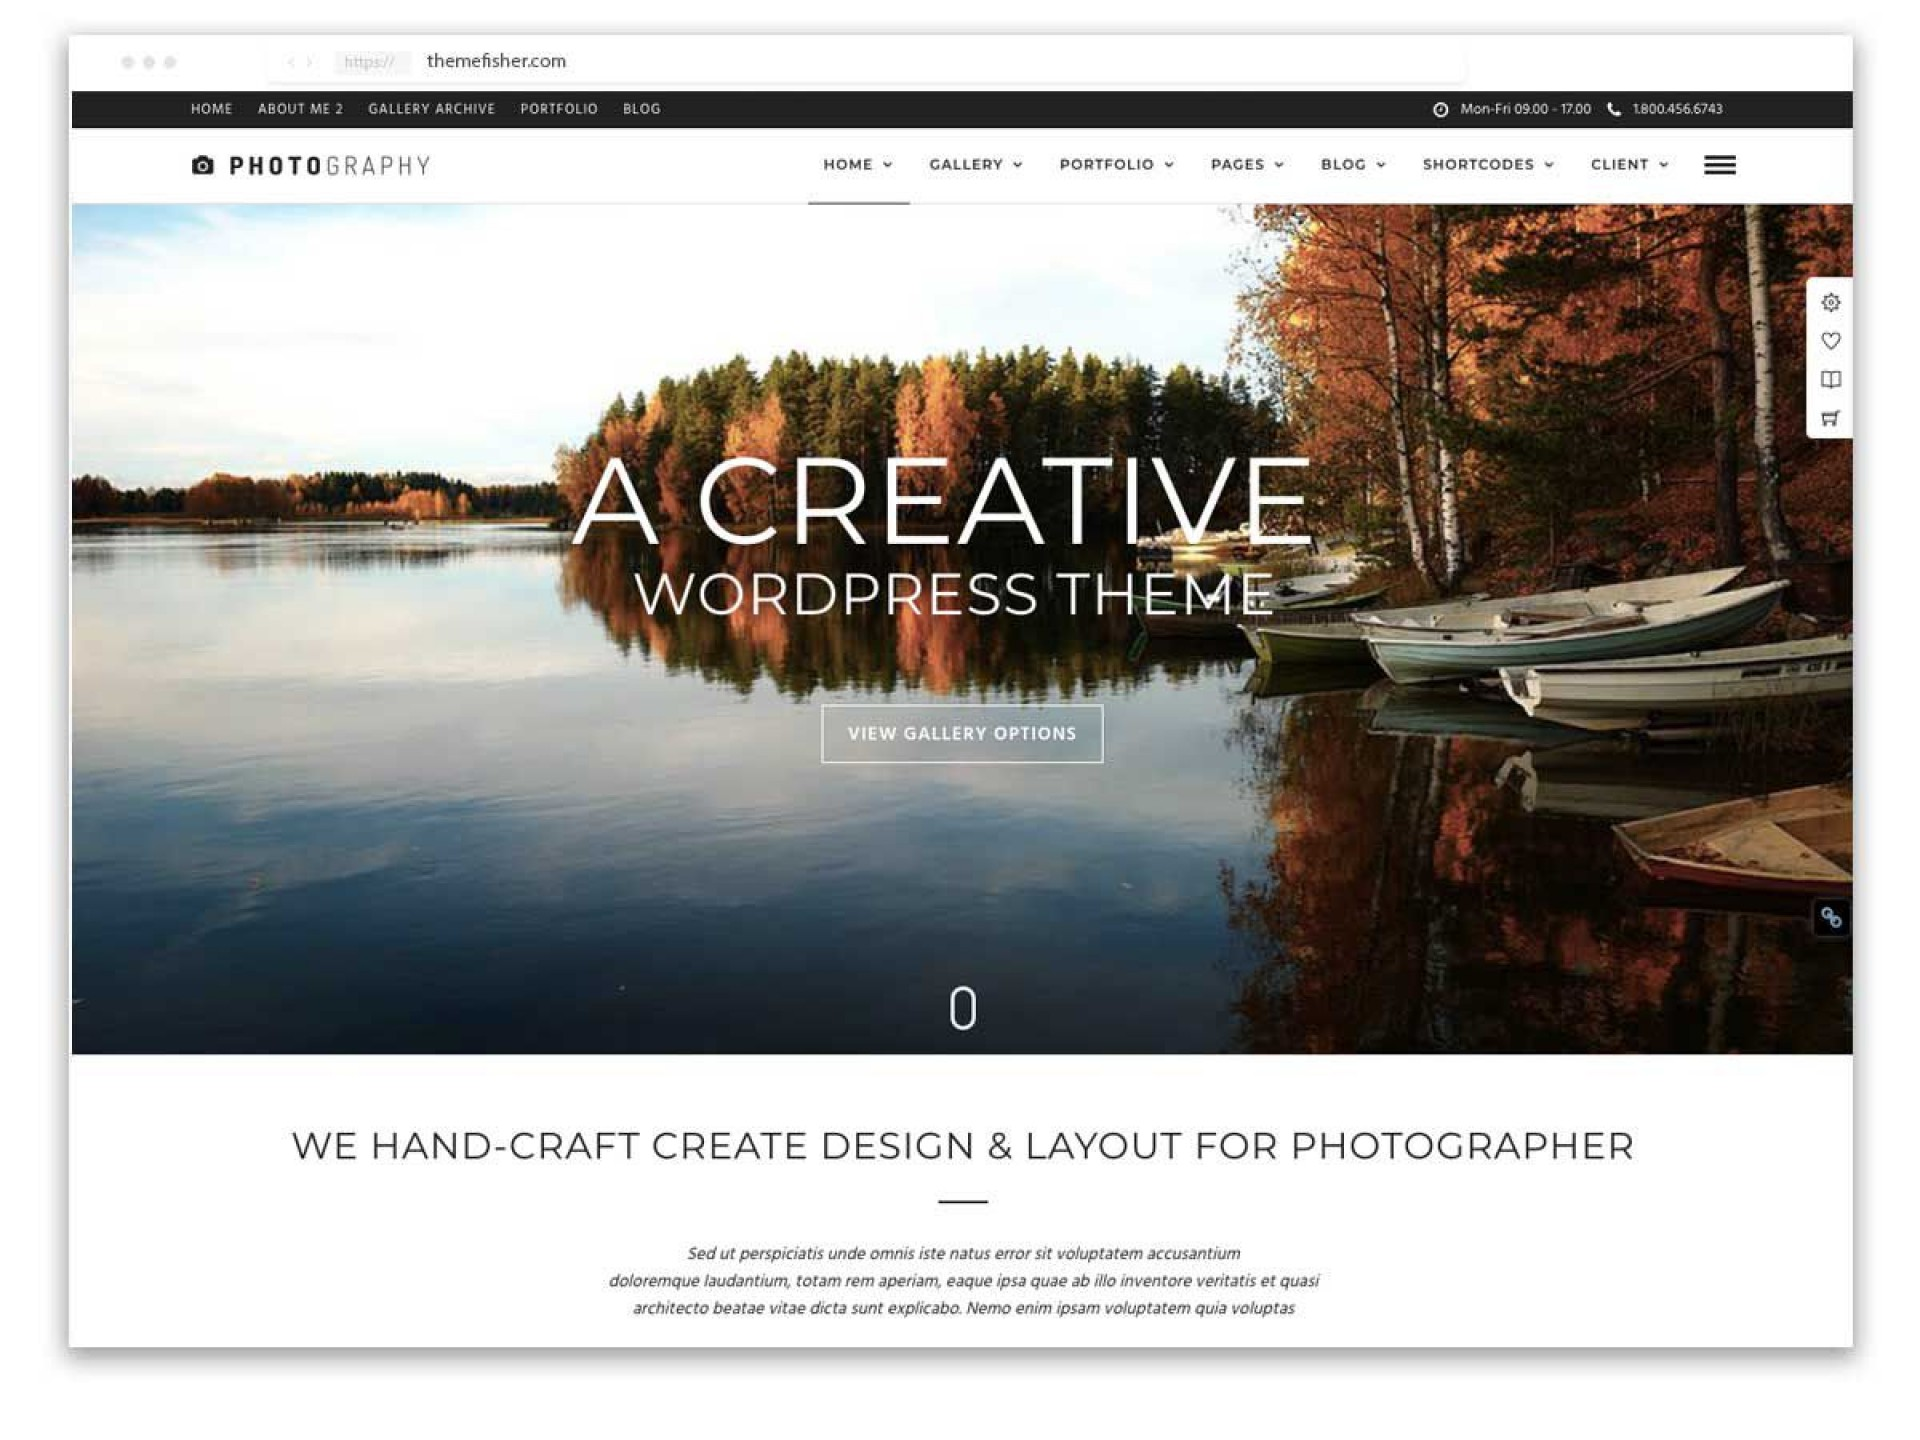 007 Surprising Web Template For Photographer Concept  Photographers Photography Free1920